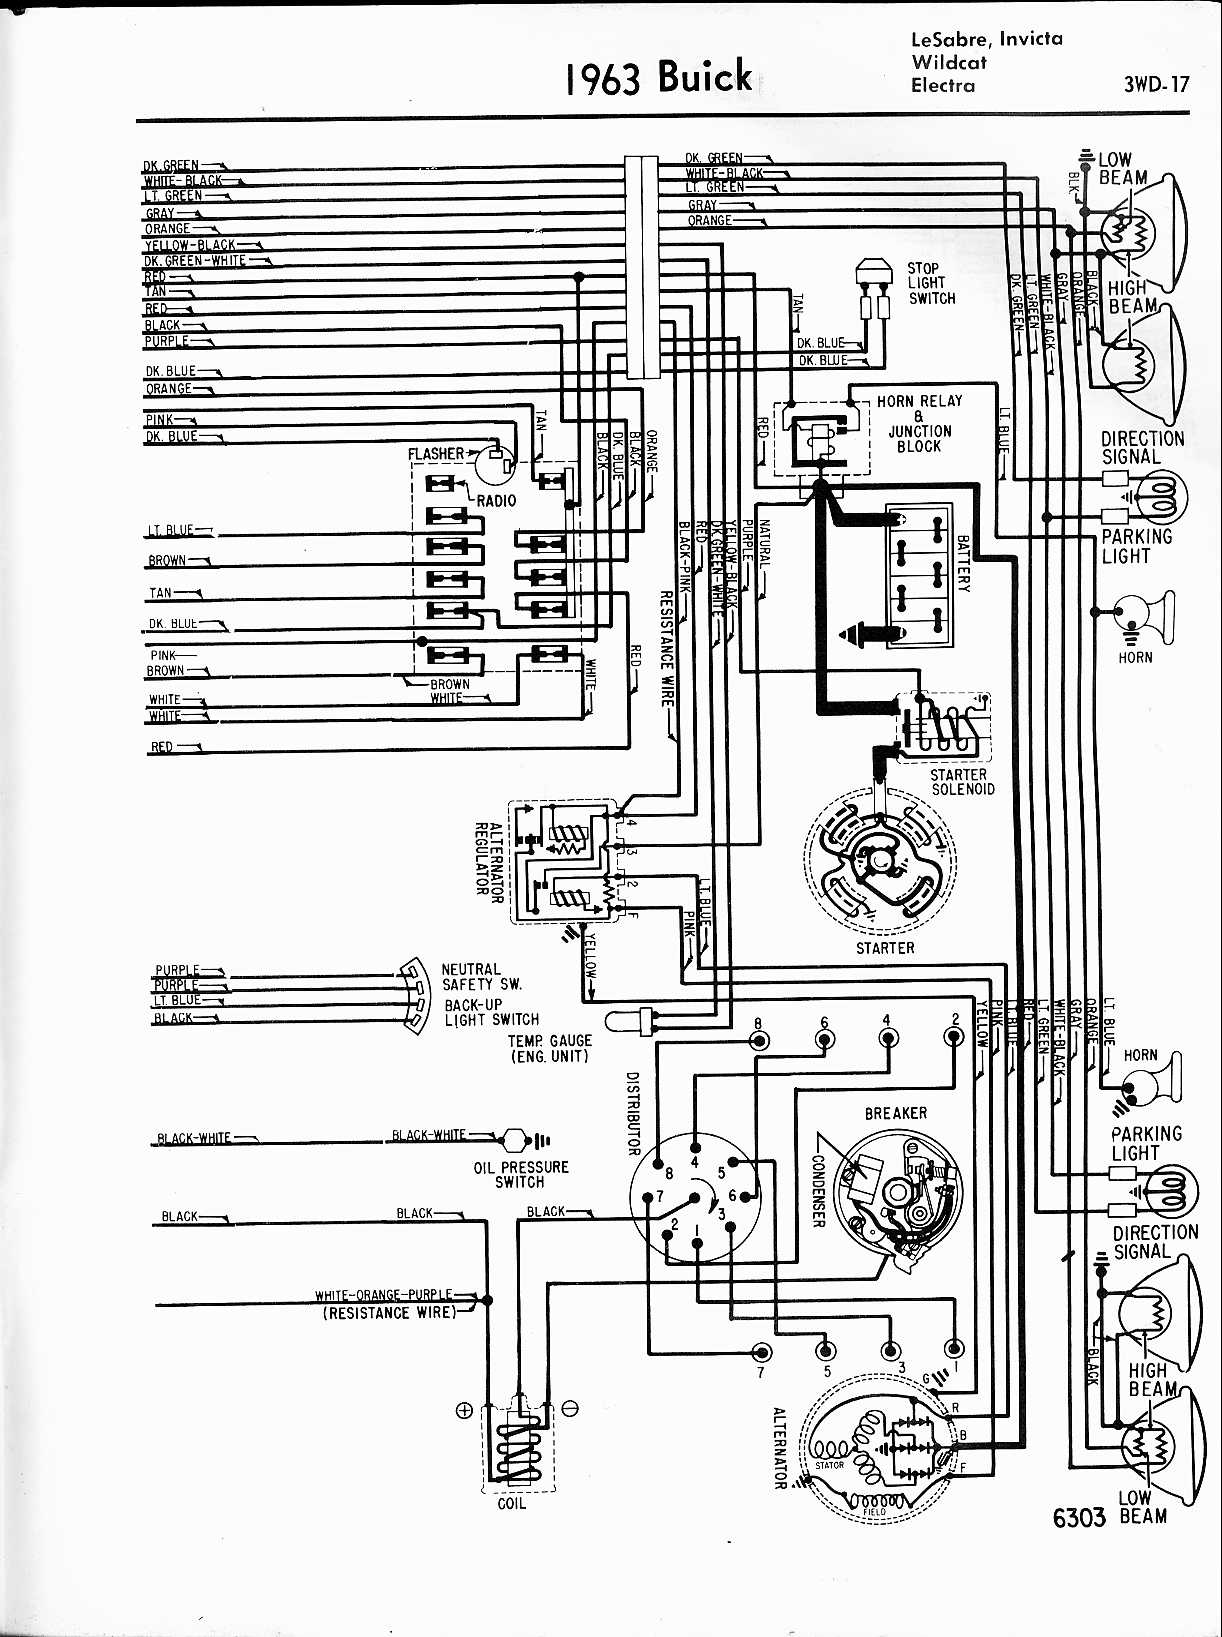 Buick Wiring Diagrams: 1957-1965